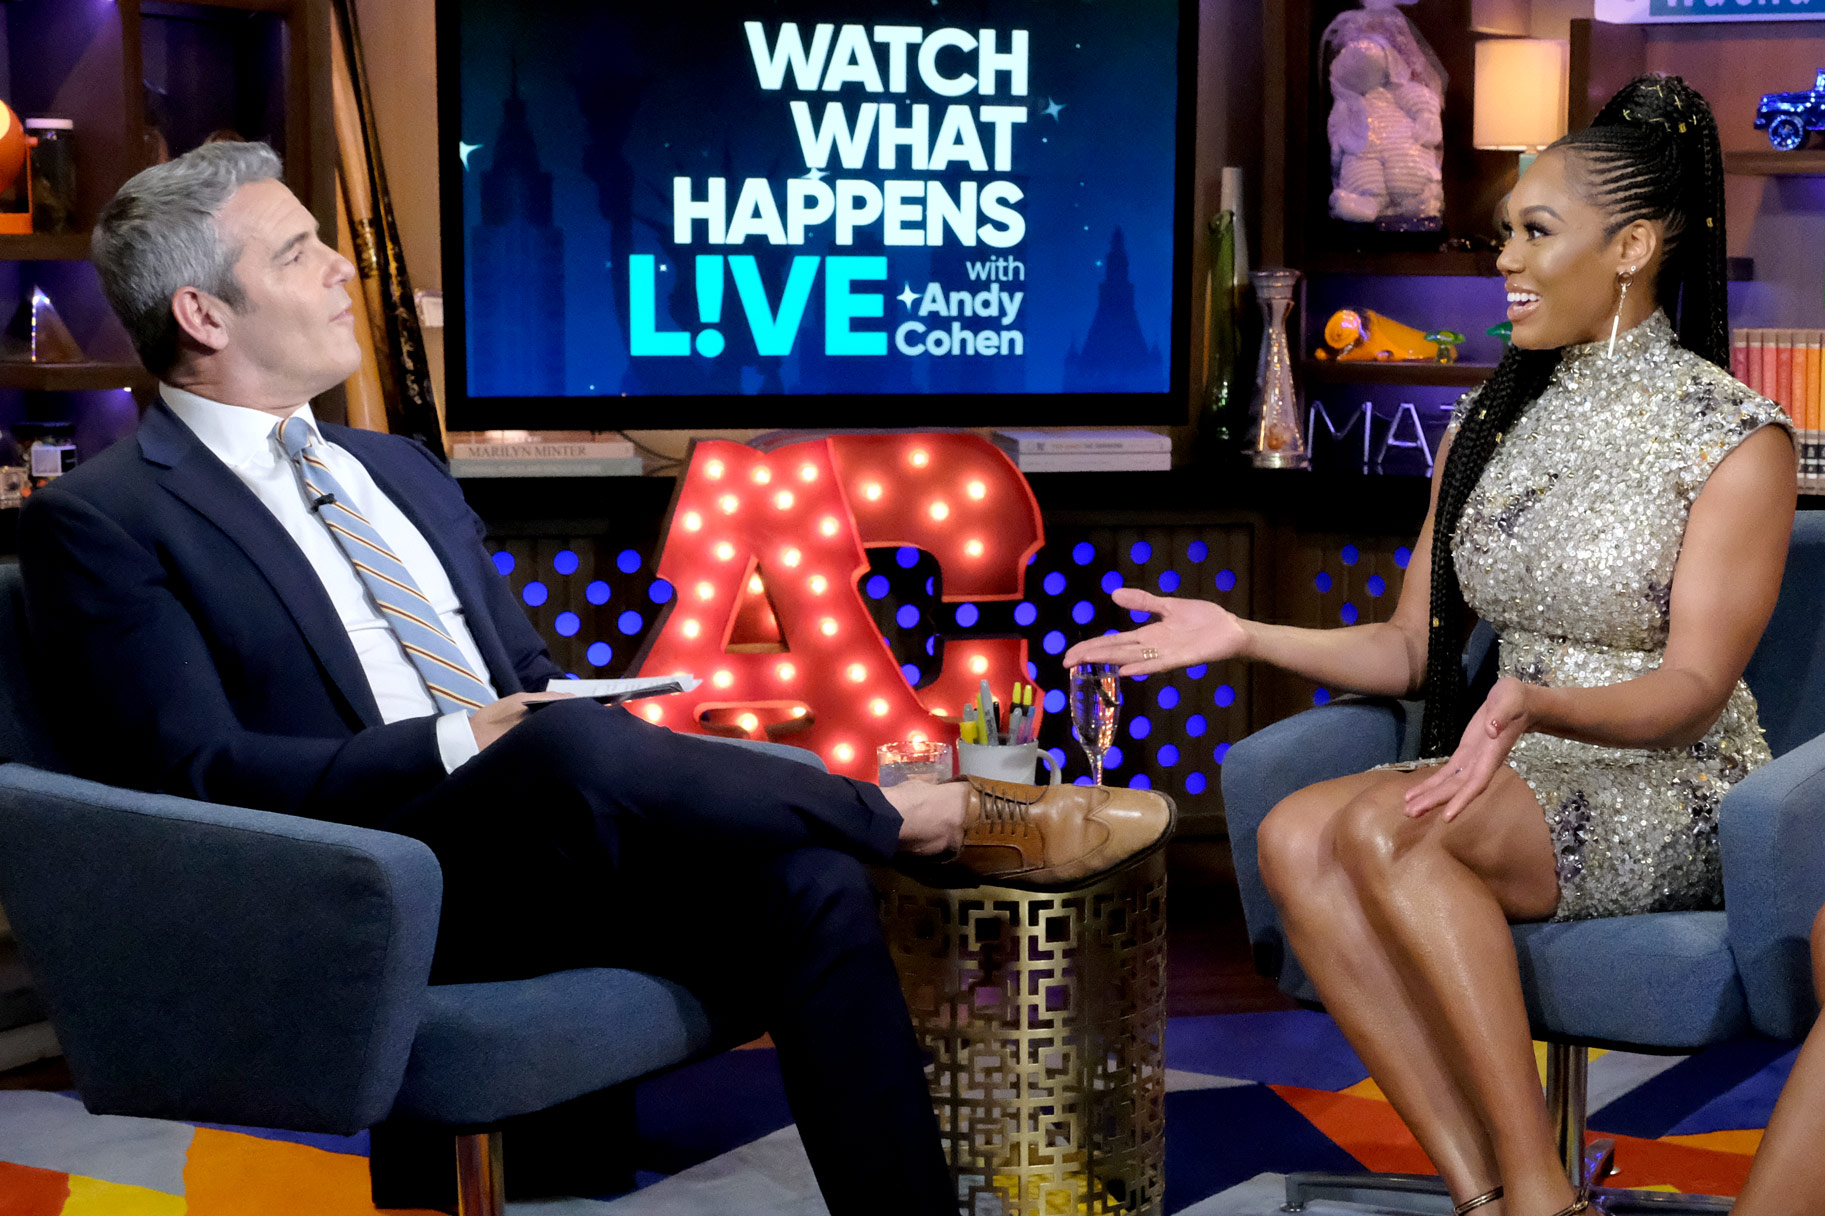 Monique Samuels on Watch What Happens Live with Andy Cohen